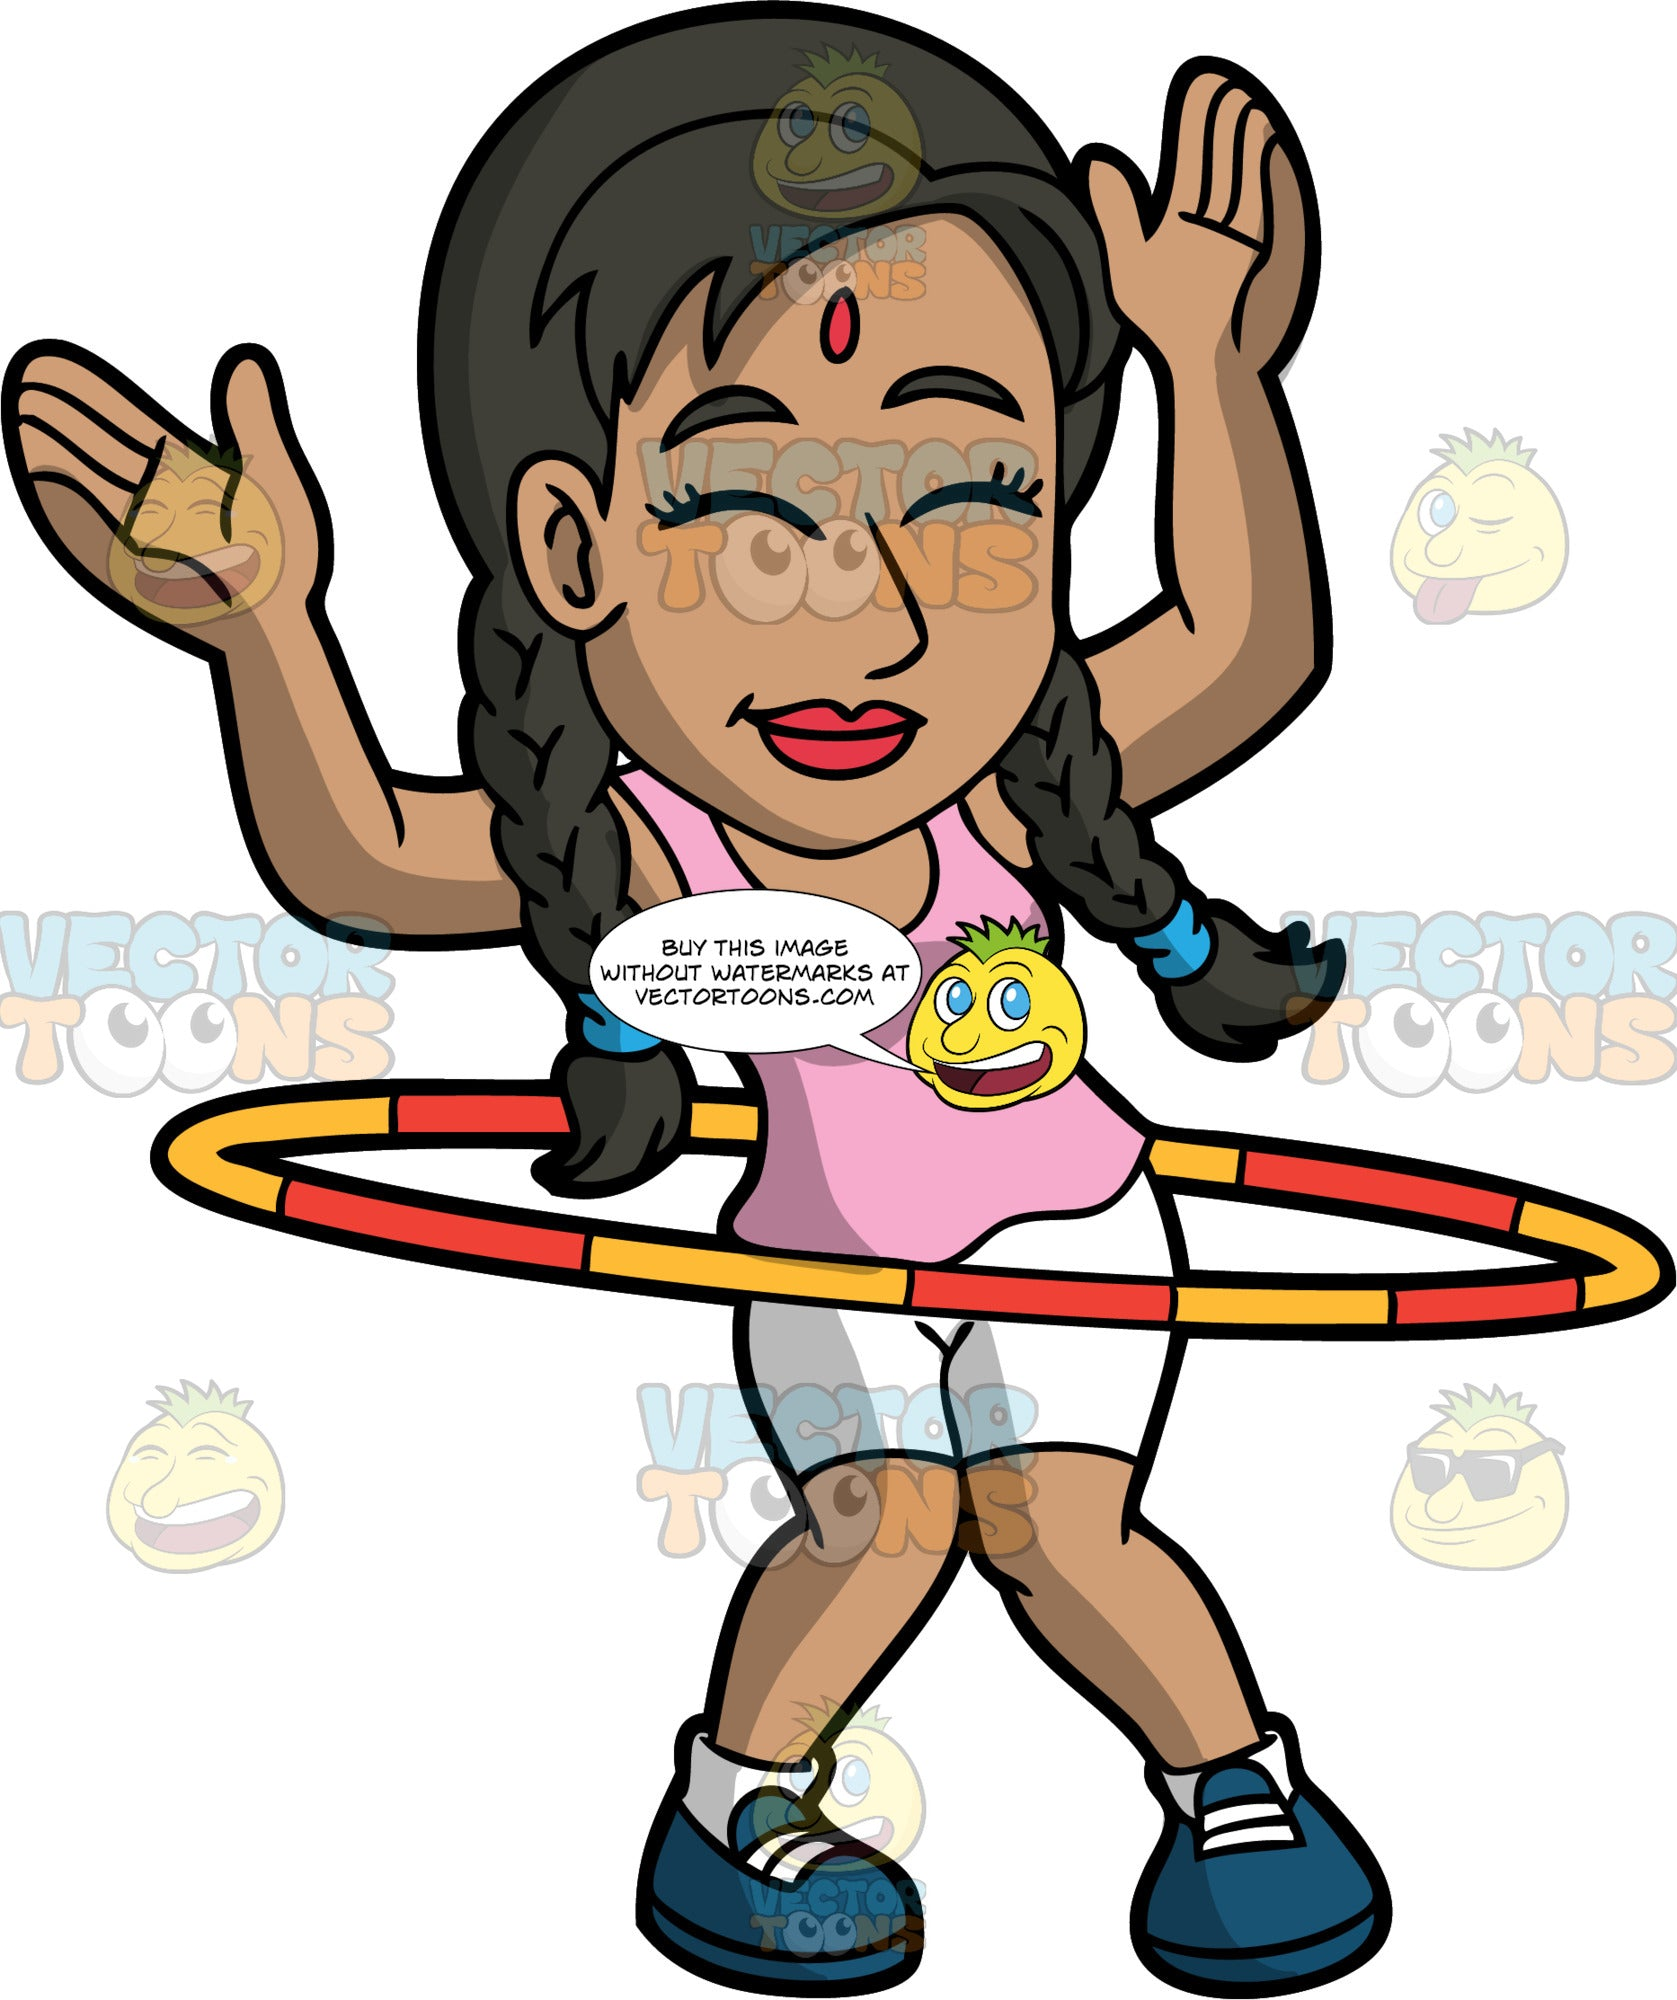 An Indian Woman Twirling A Hula Hoop. An Indian woman with a red mark on her forehead, black hair tied in braided pigtails, wearing a pink tank top, white shorts, socks, teal shoes, shuts her eyes and smiles in delight while raising her hands up as she twirls a yellow and red hula hoop around her waist